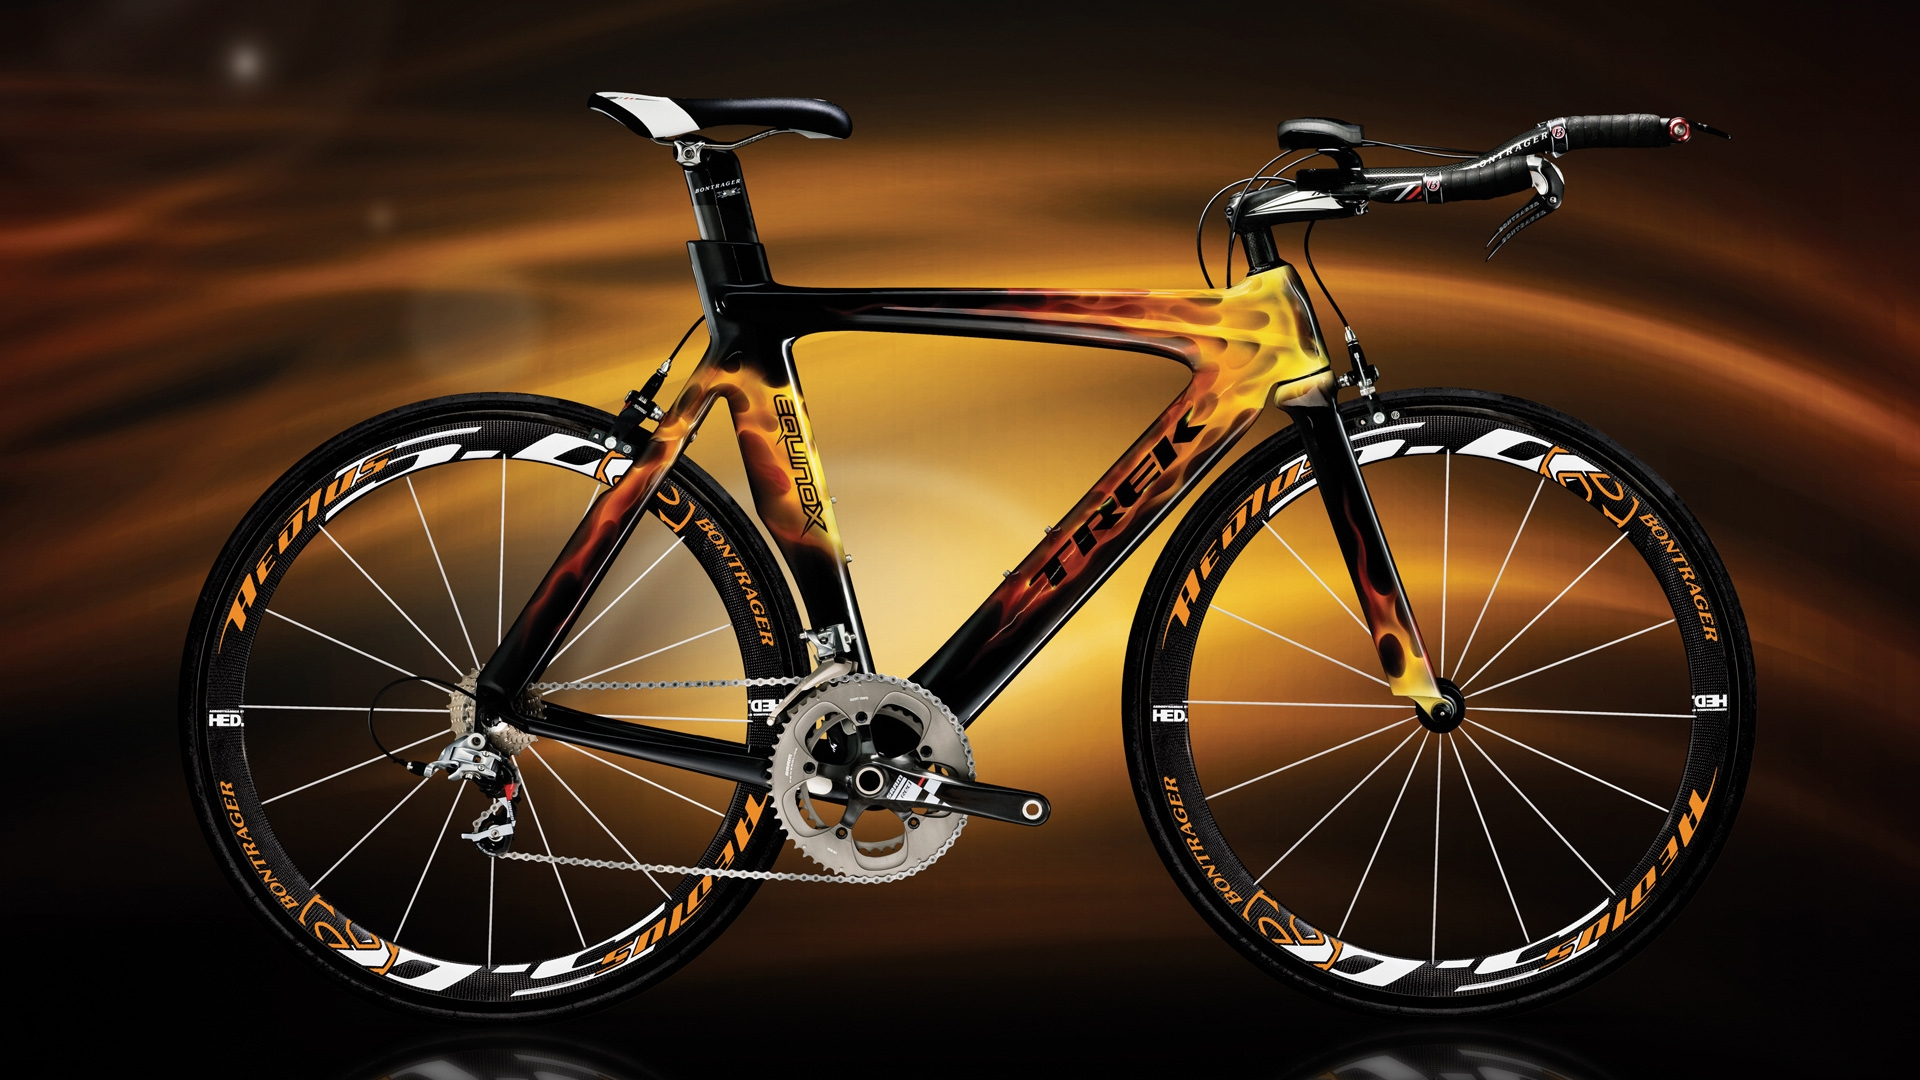 Trek bike HD wallpaper HD Latest Wallpapers